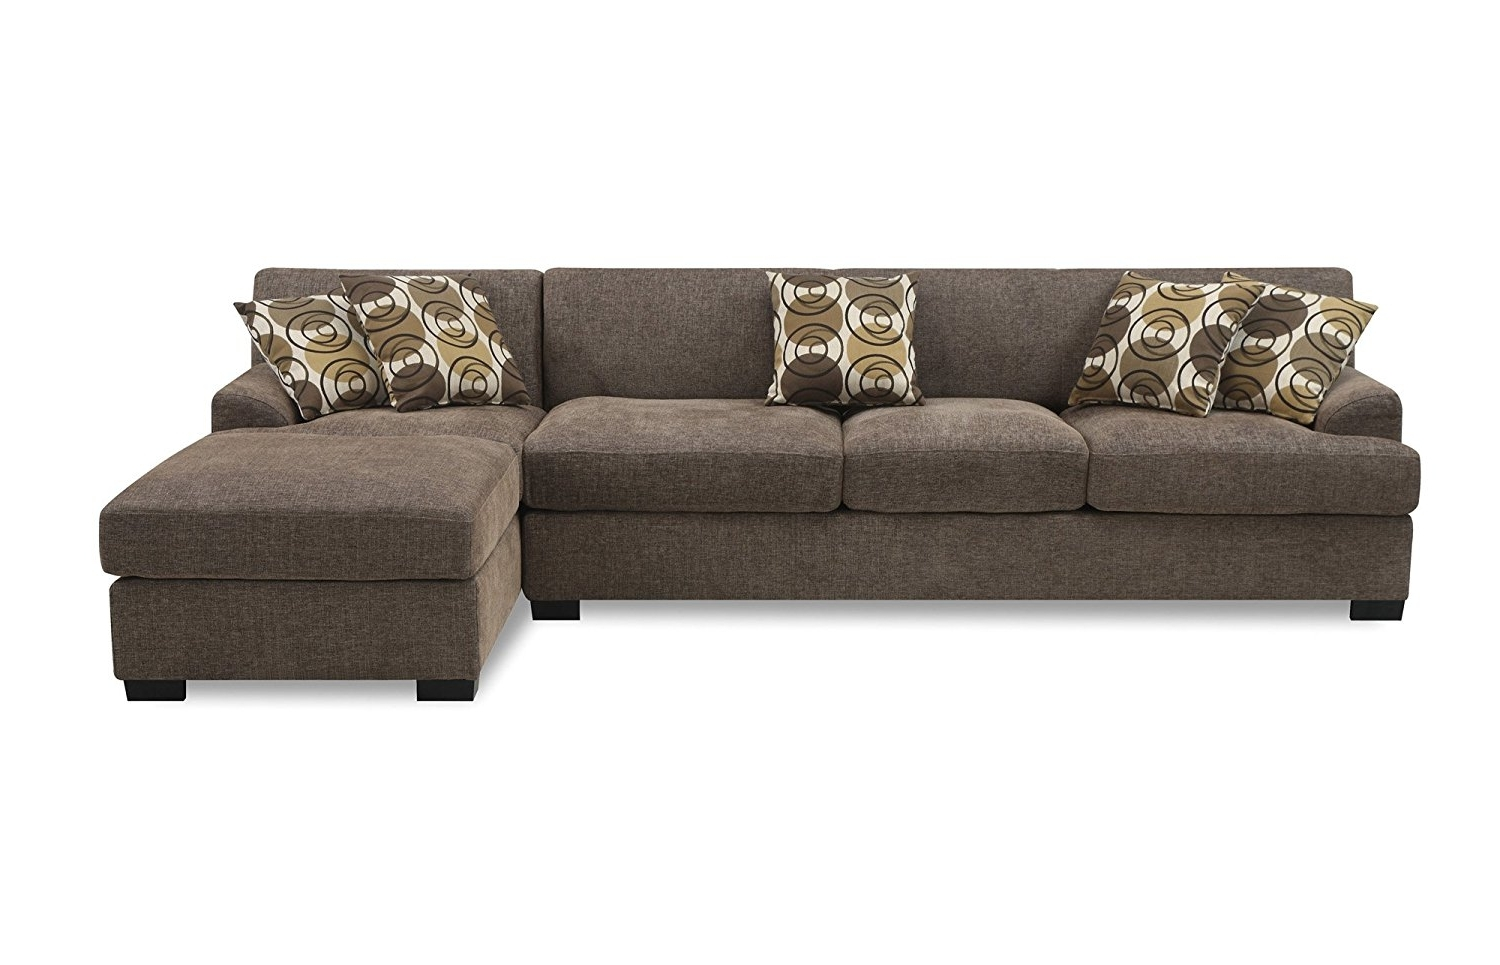 Chaise Sofas Inside Famous Amazon: Bobkona Poundex Benford Collection Faux Linen Chaise (View 6 of 15)